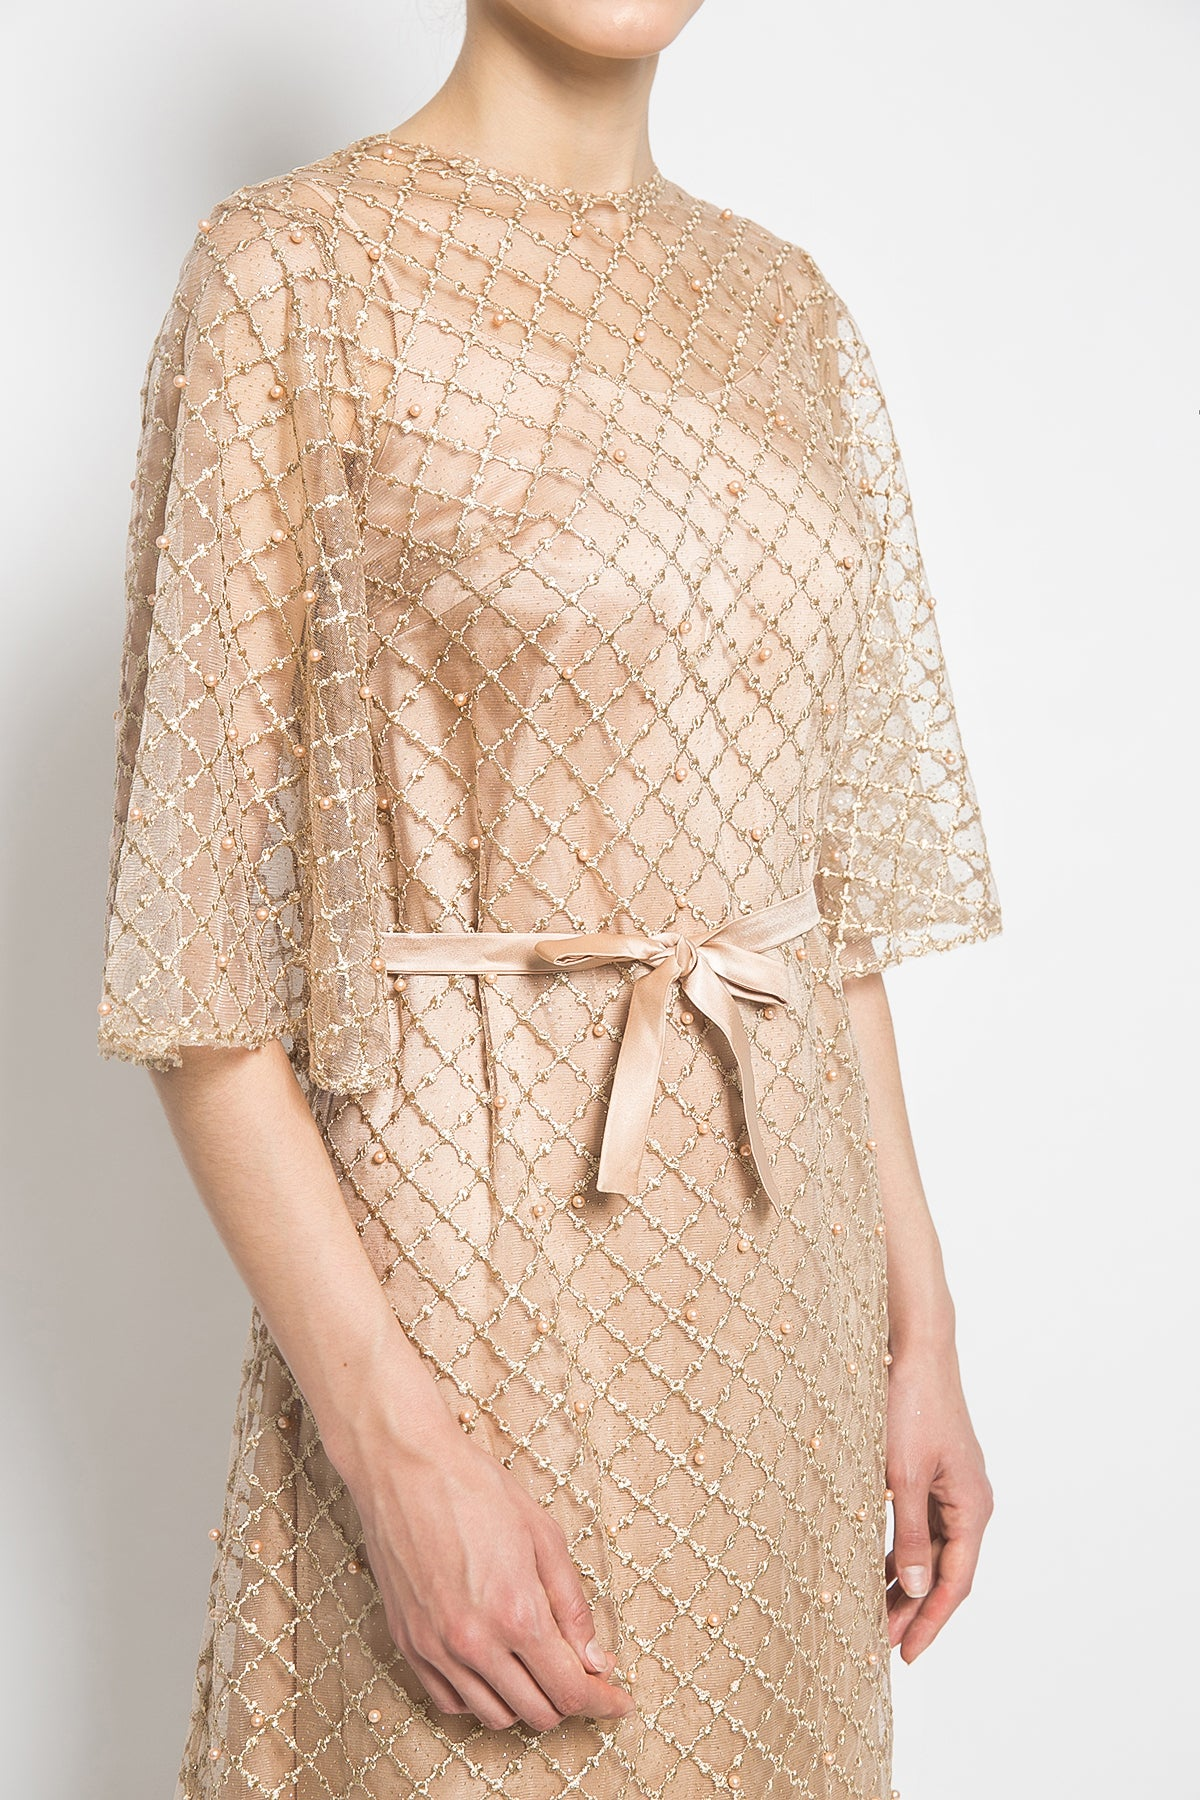 Vezzo Studio Octa Dress in Gold